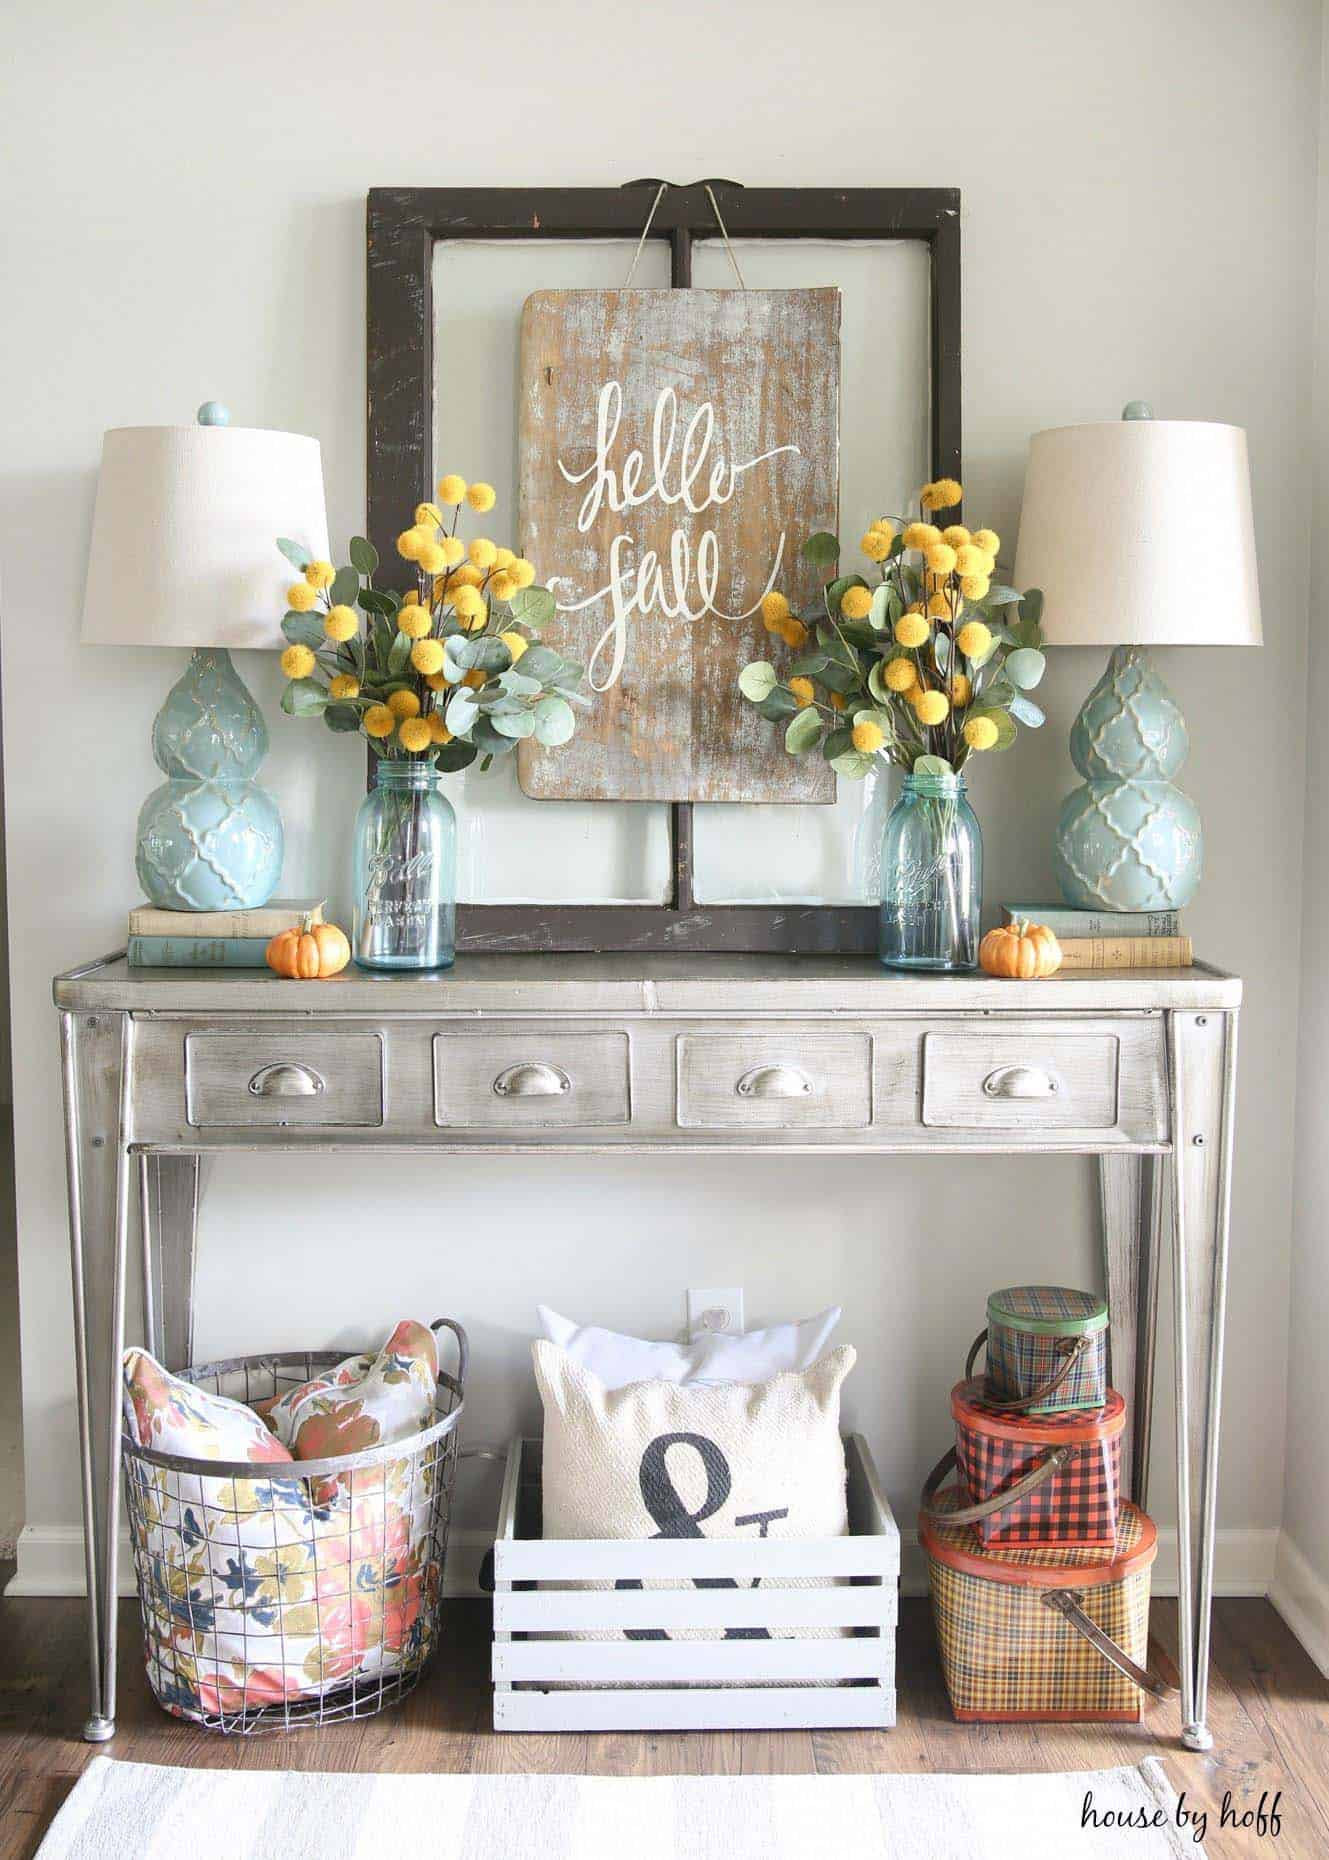 Merveilleux Console Table Fall Decor Ideas